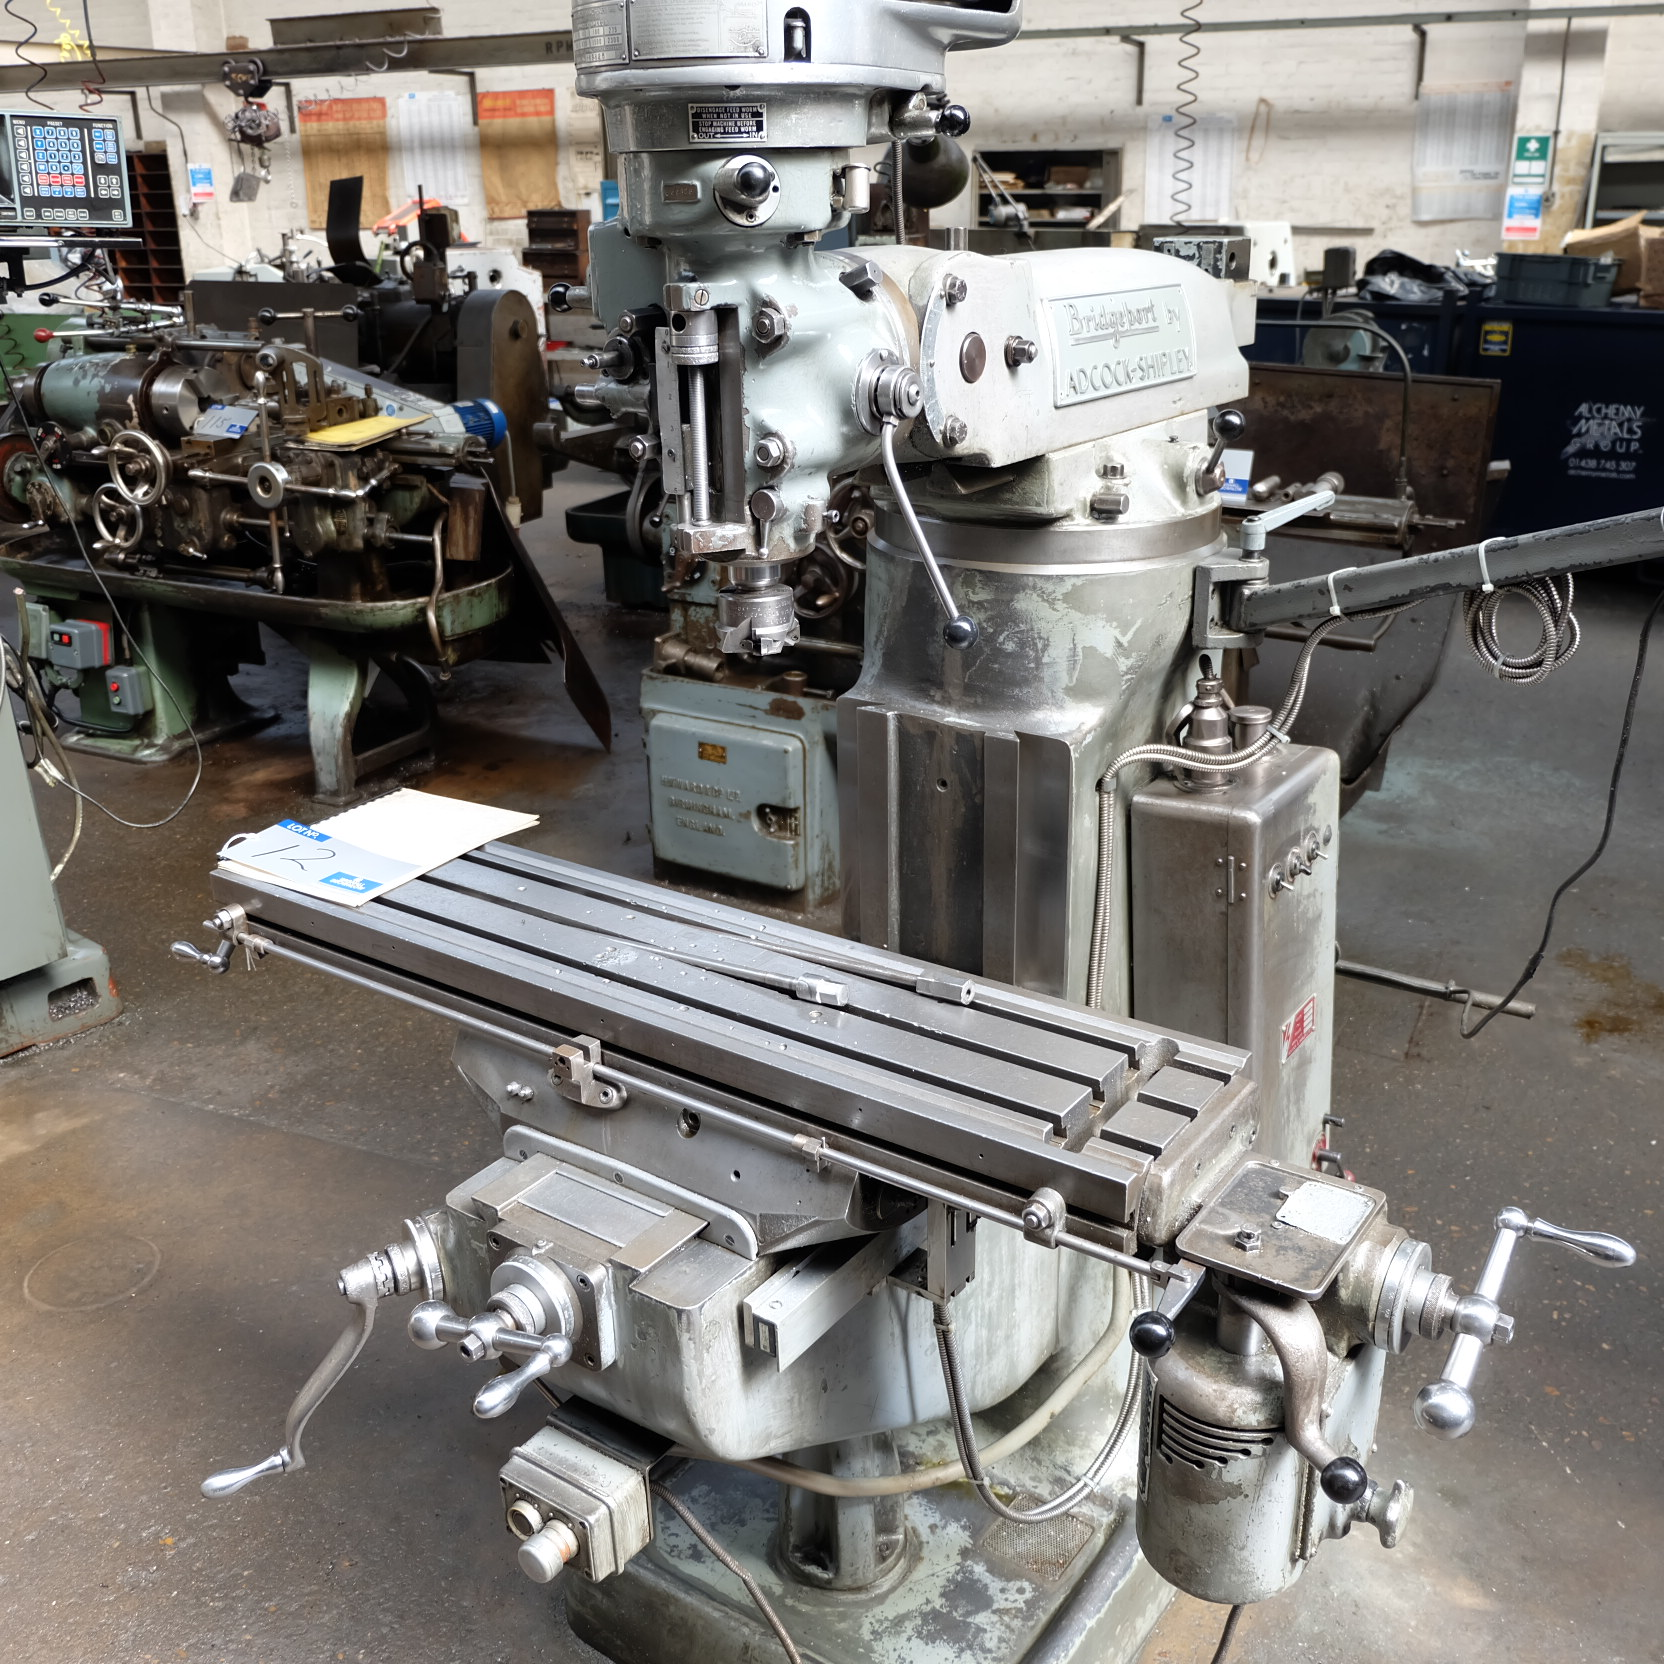 Lot 12 - A Bridgeport BRJ Vertical Turret Head Milling Machine, 42in x 9in table with Mitutoyo 2 axis Digital